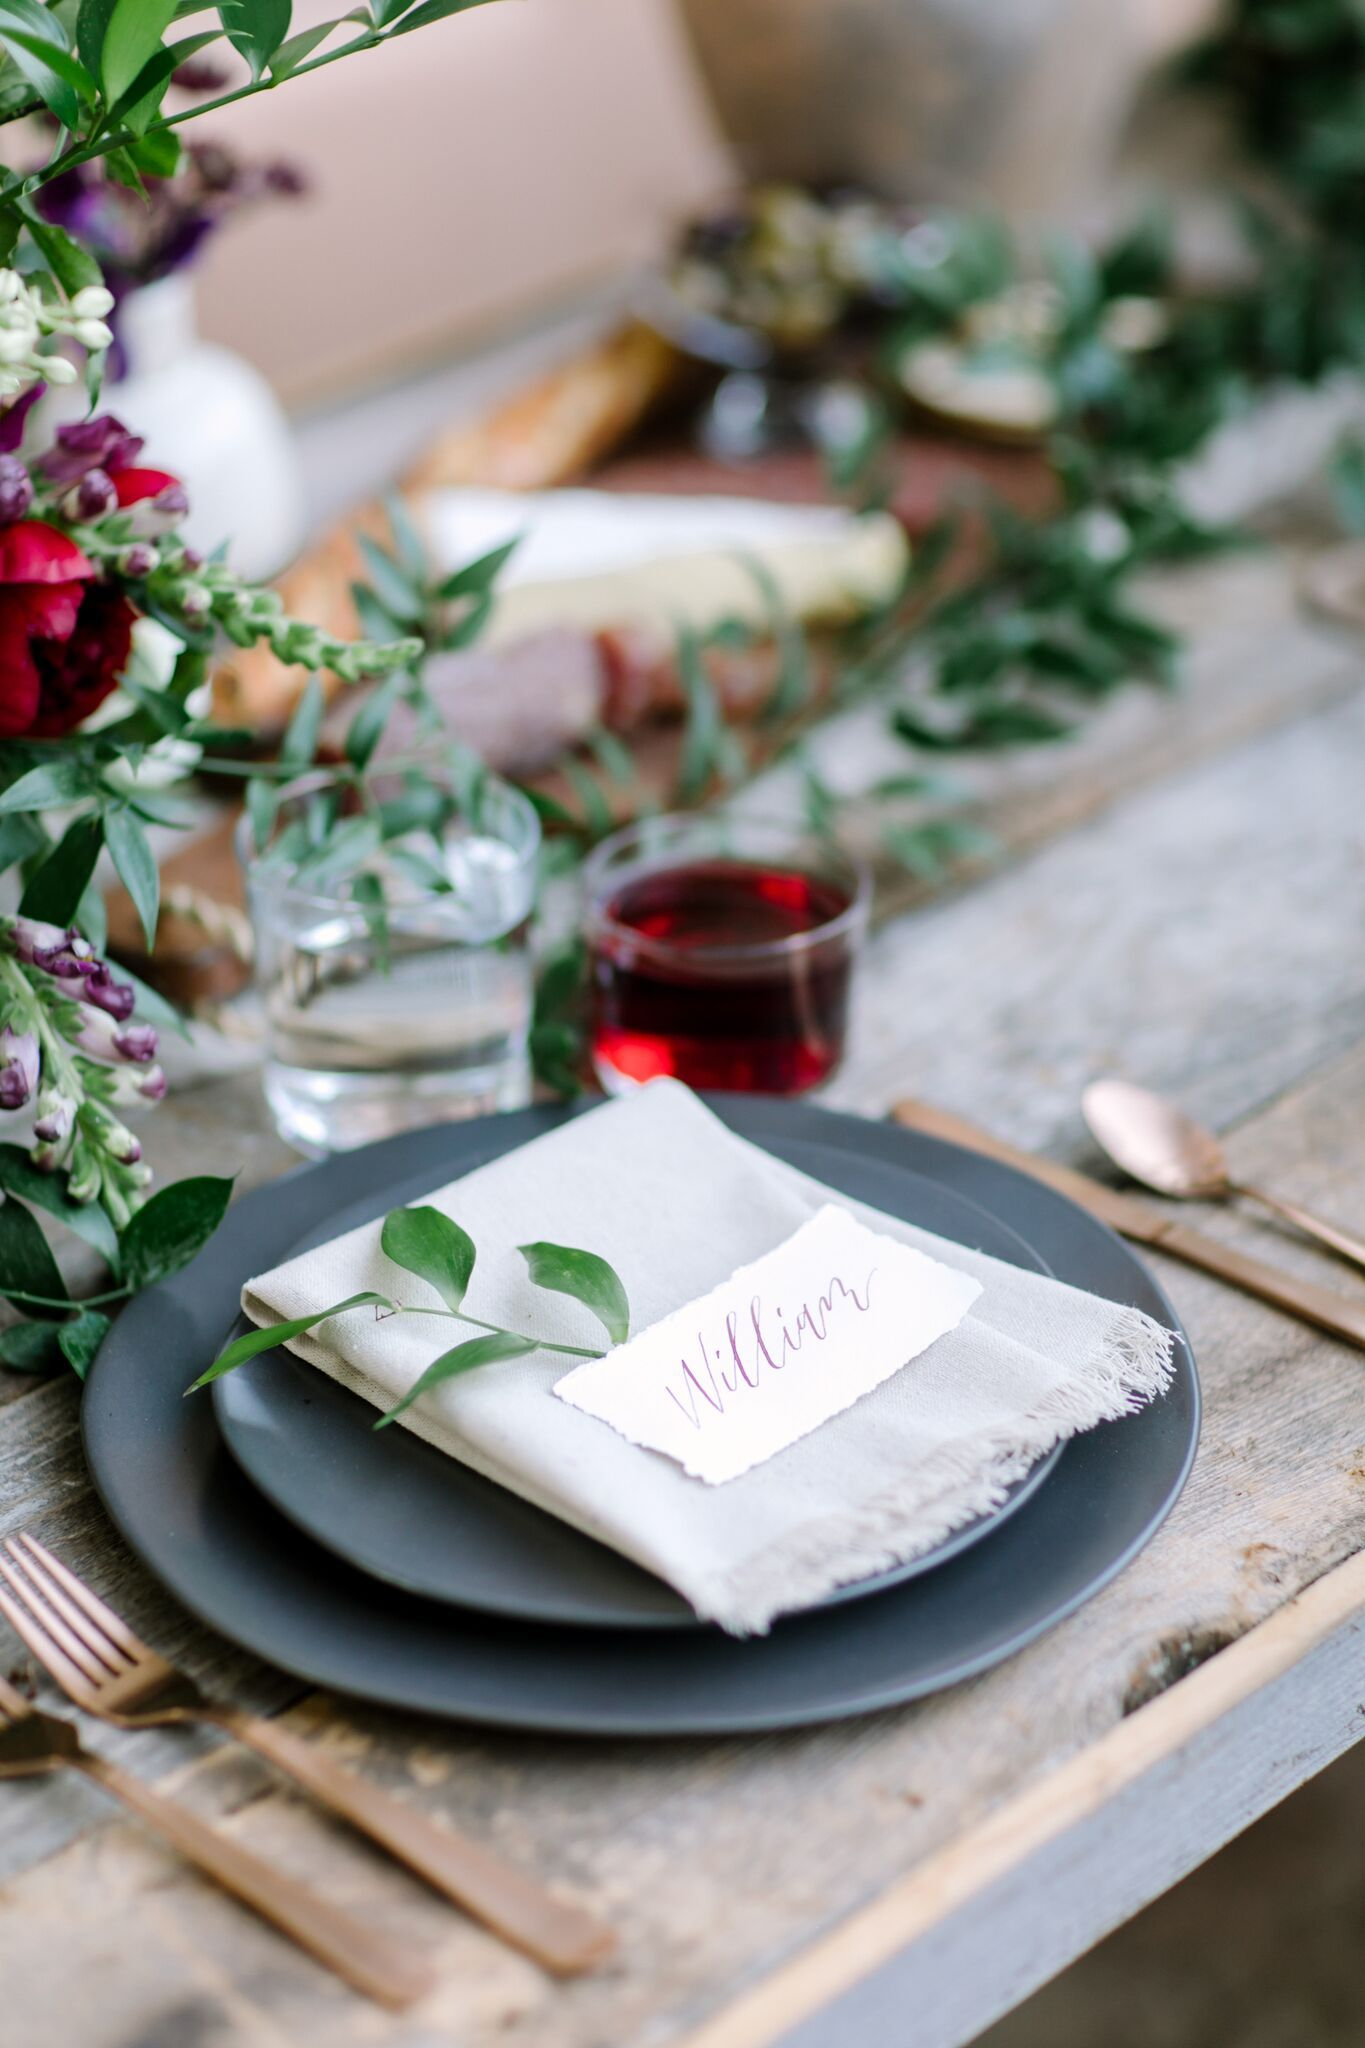 Kinfolk Inspired Organic Wedding Tablescape With Modern Copper Flatware And Black Ceramic Plates Surro Wedding Plate Setting Wedding Tablescapes Wedding Plates